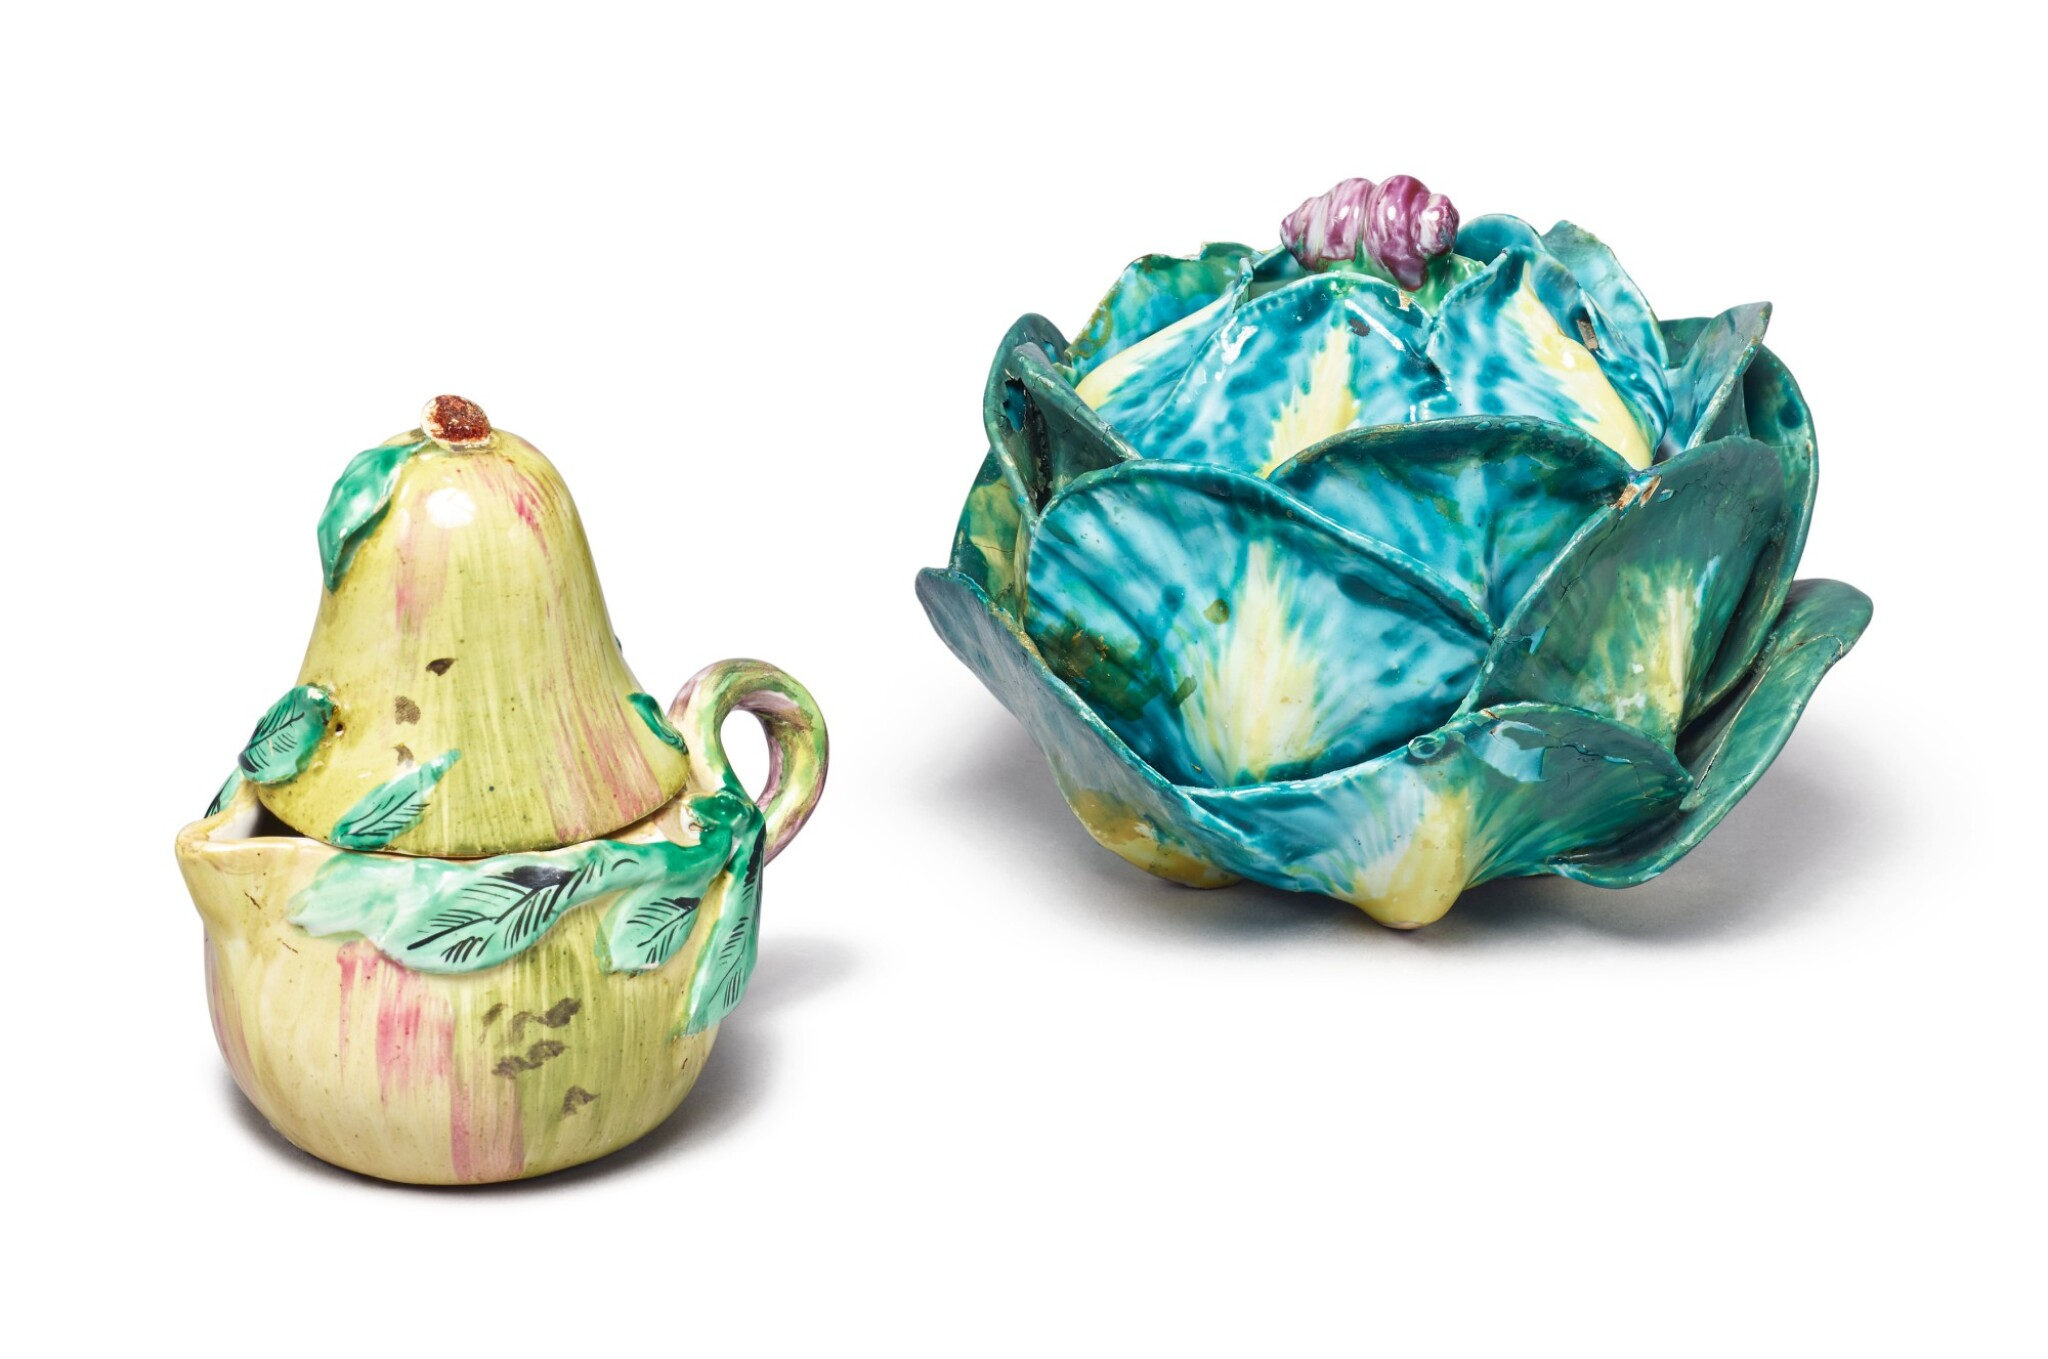 View full screen - View 1 of Lot 153. A HOLITSCH FAIENCE SMALL CABBAGE TUREEN AND COVER AND A CONTINENTAL FAIENCE PEAR-FORM JUG AND COVER, CIRCA 1770.